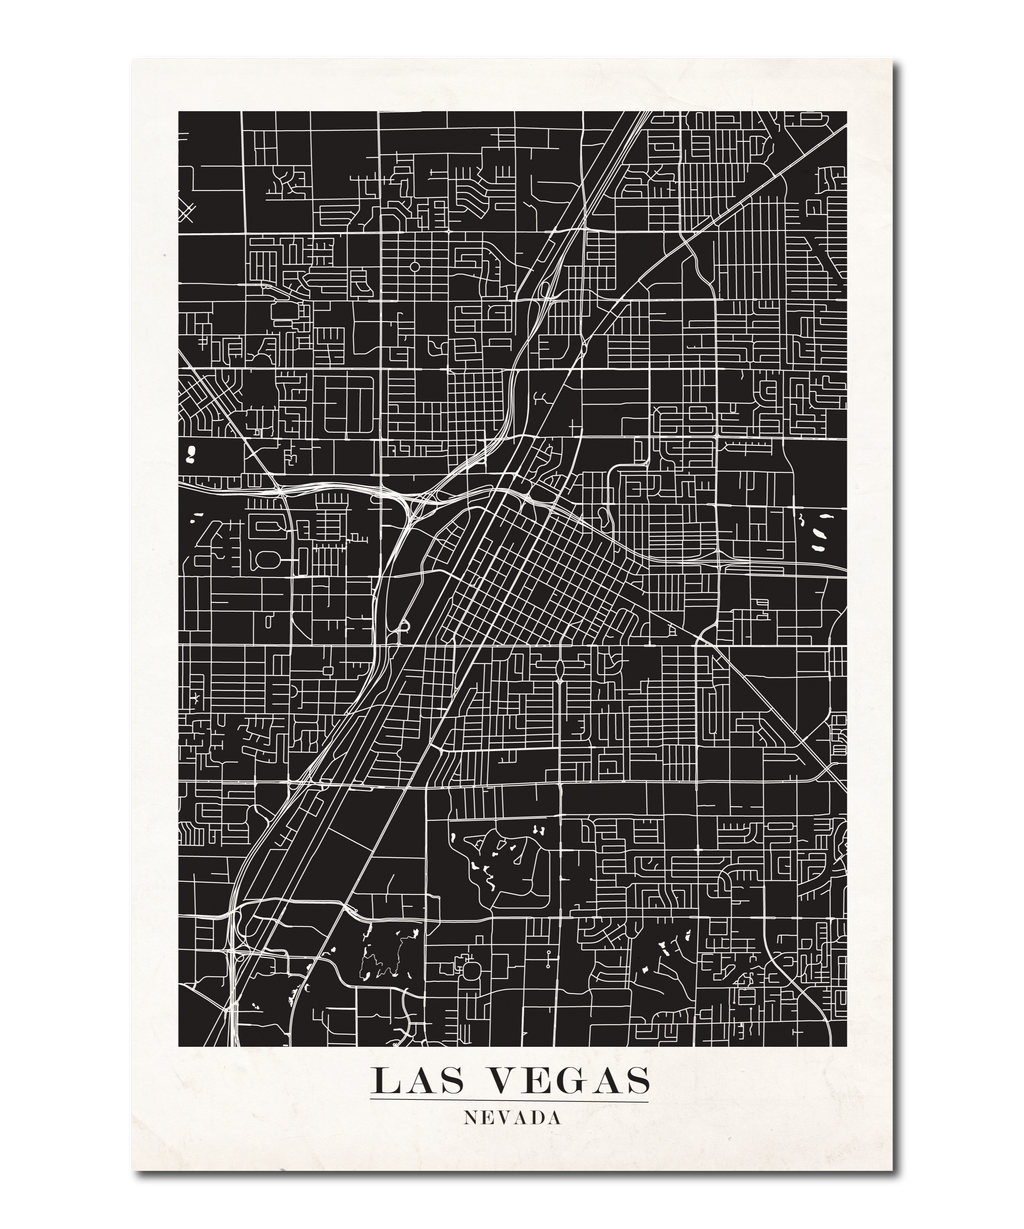 Las Vegas Map Design